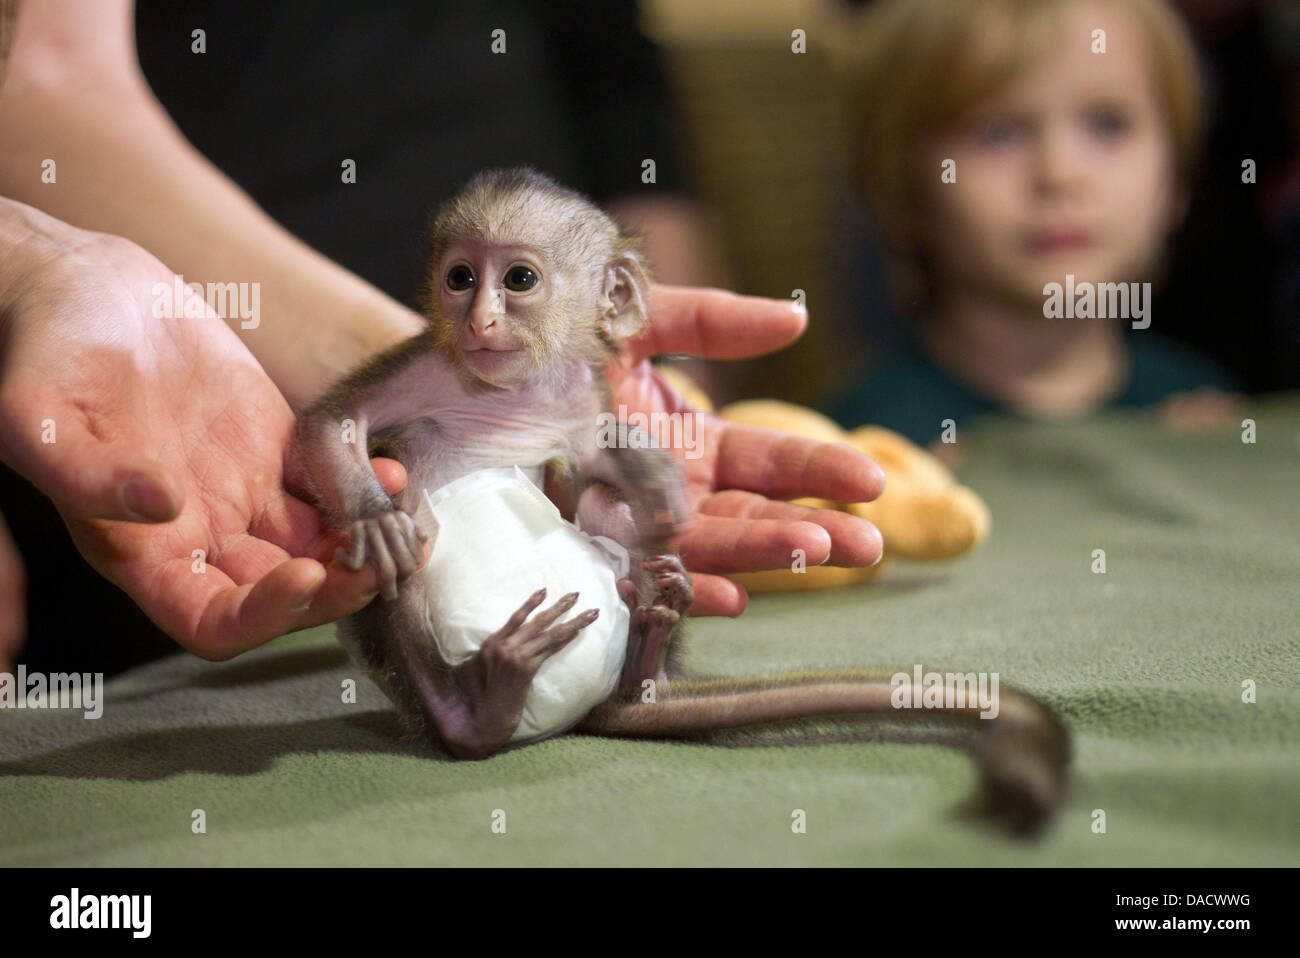 A nine-day old baby mona monkey, still wearing a diaper, sits in a zookeeper's hand at the Zoo inMagdeburg, - Stock Image